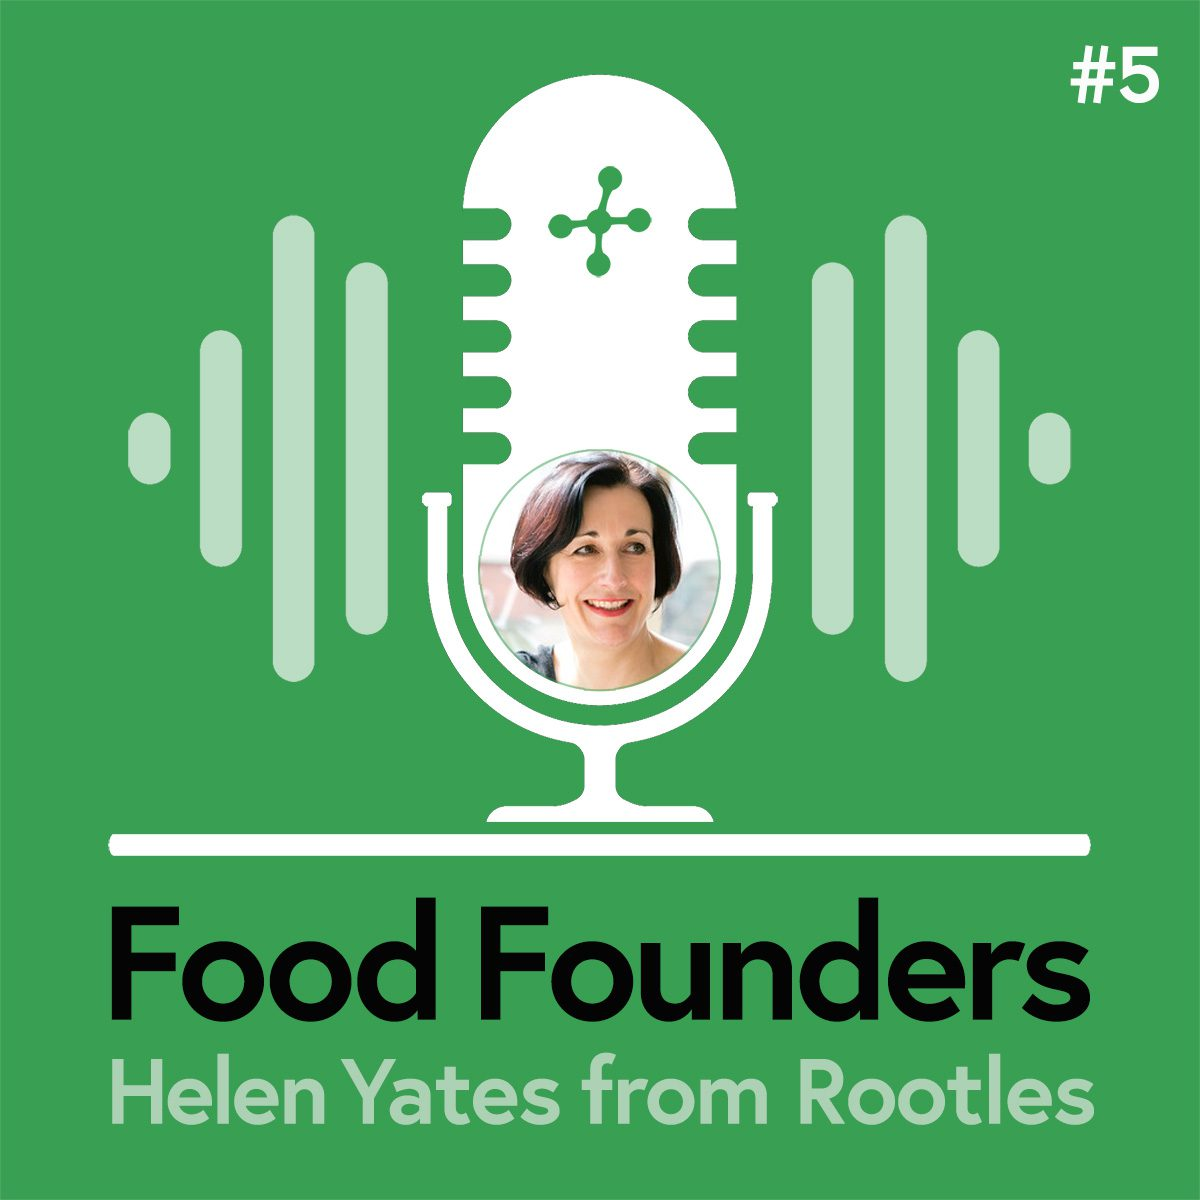 Food Founders Interview with Helen Yates from Rootles